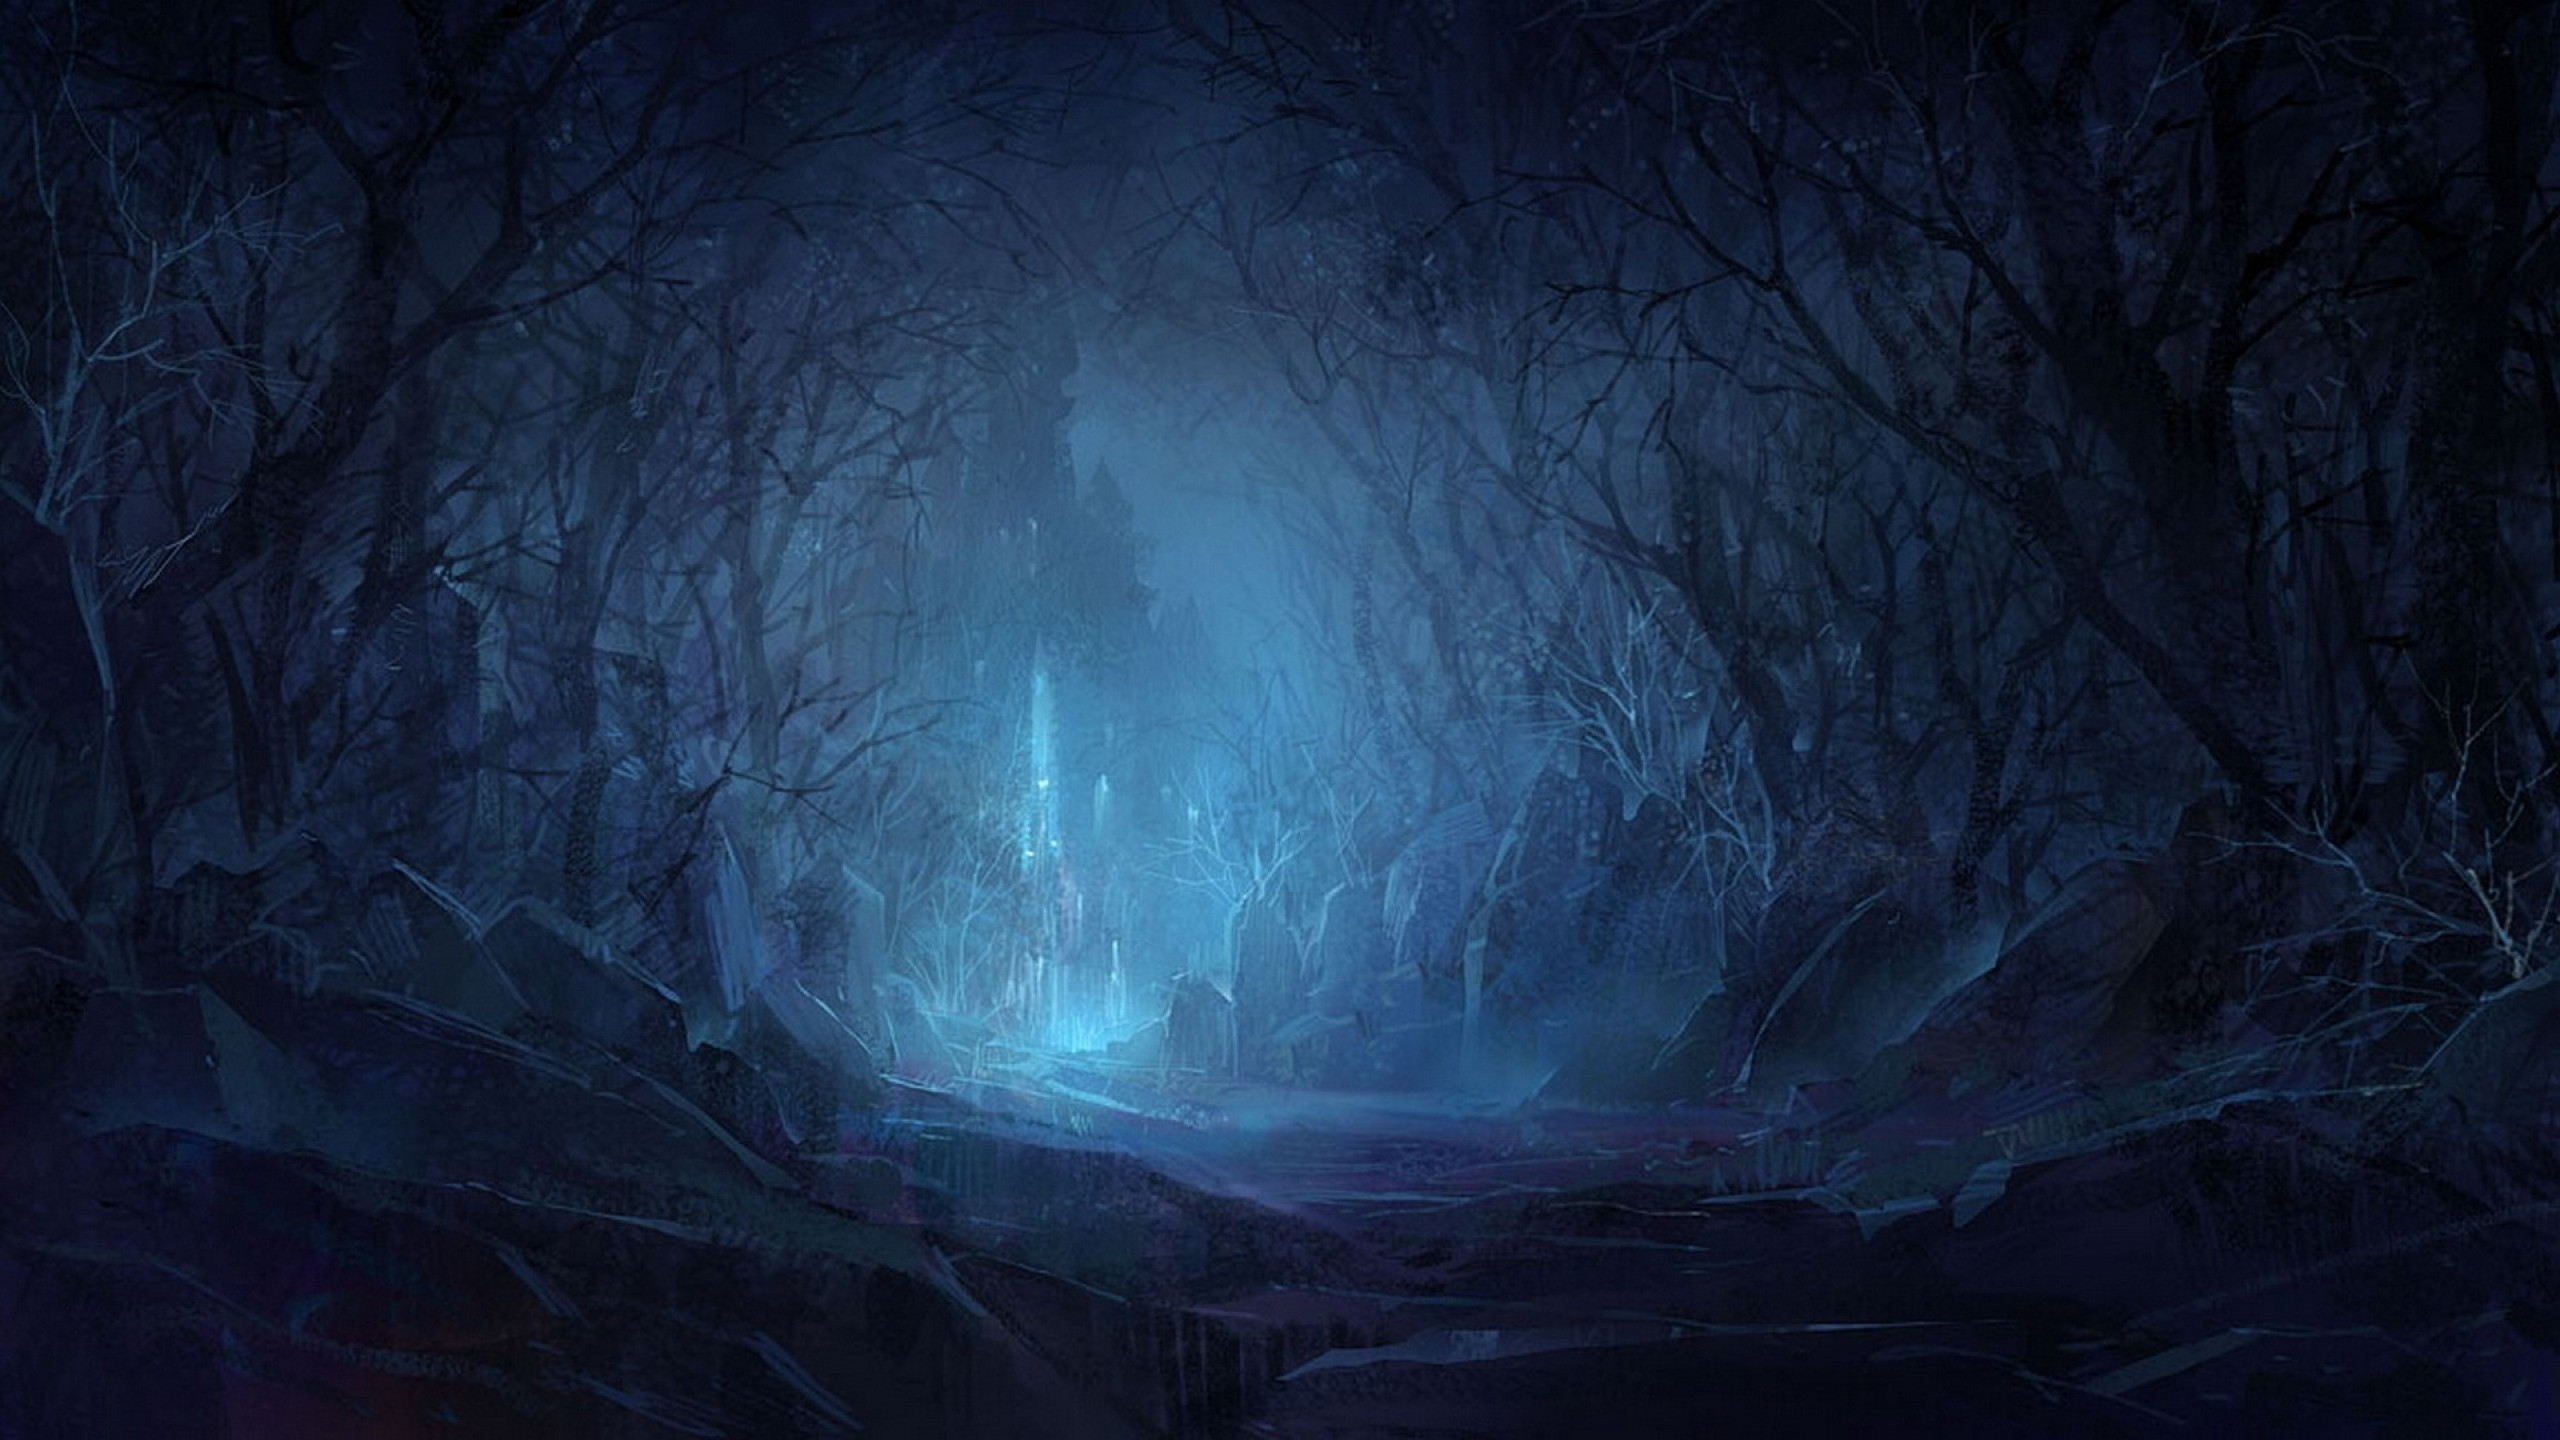 2880x1800 Tombstone Dark Halloween Trees Forest Woods Night Scary Spooky Creepy Glow Cemetery Grave Landscapes Wallpaper At Wallpapers